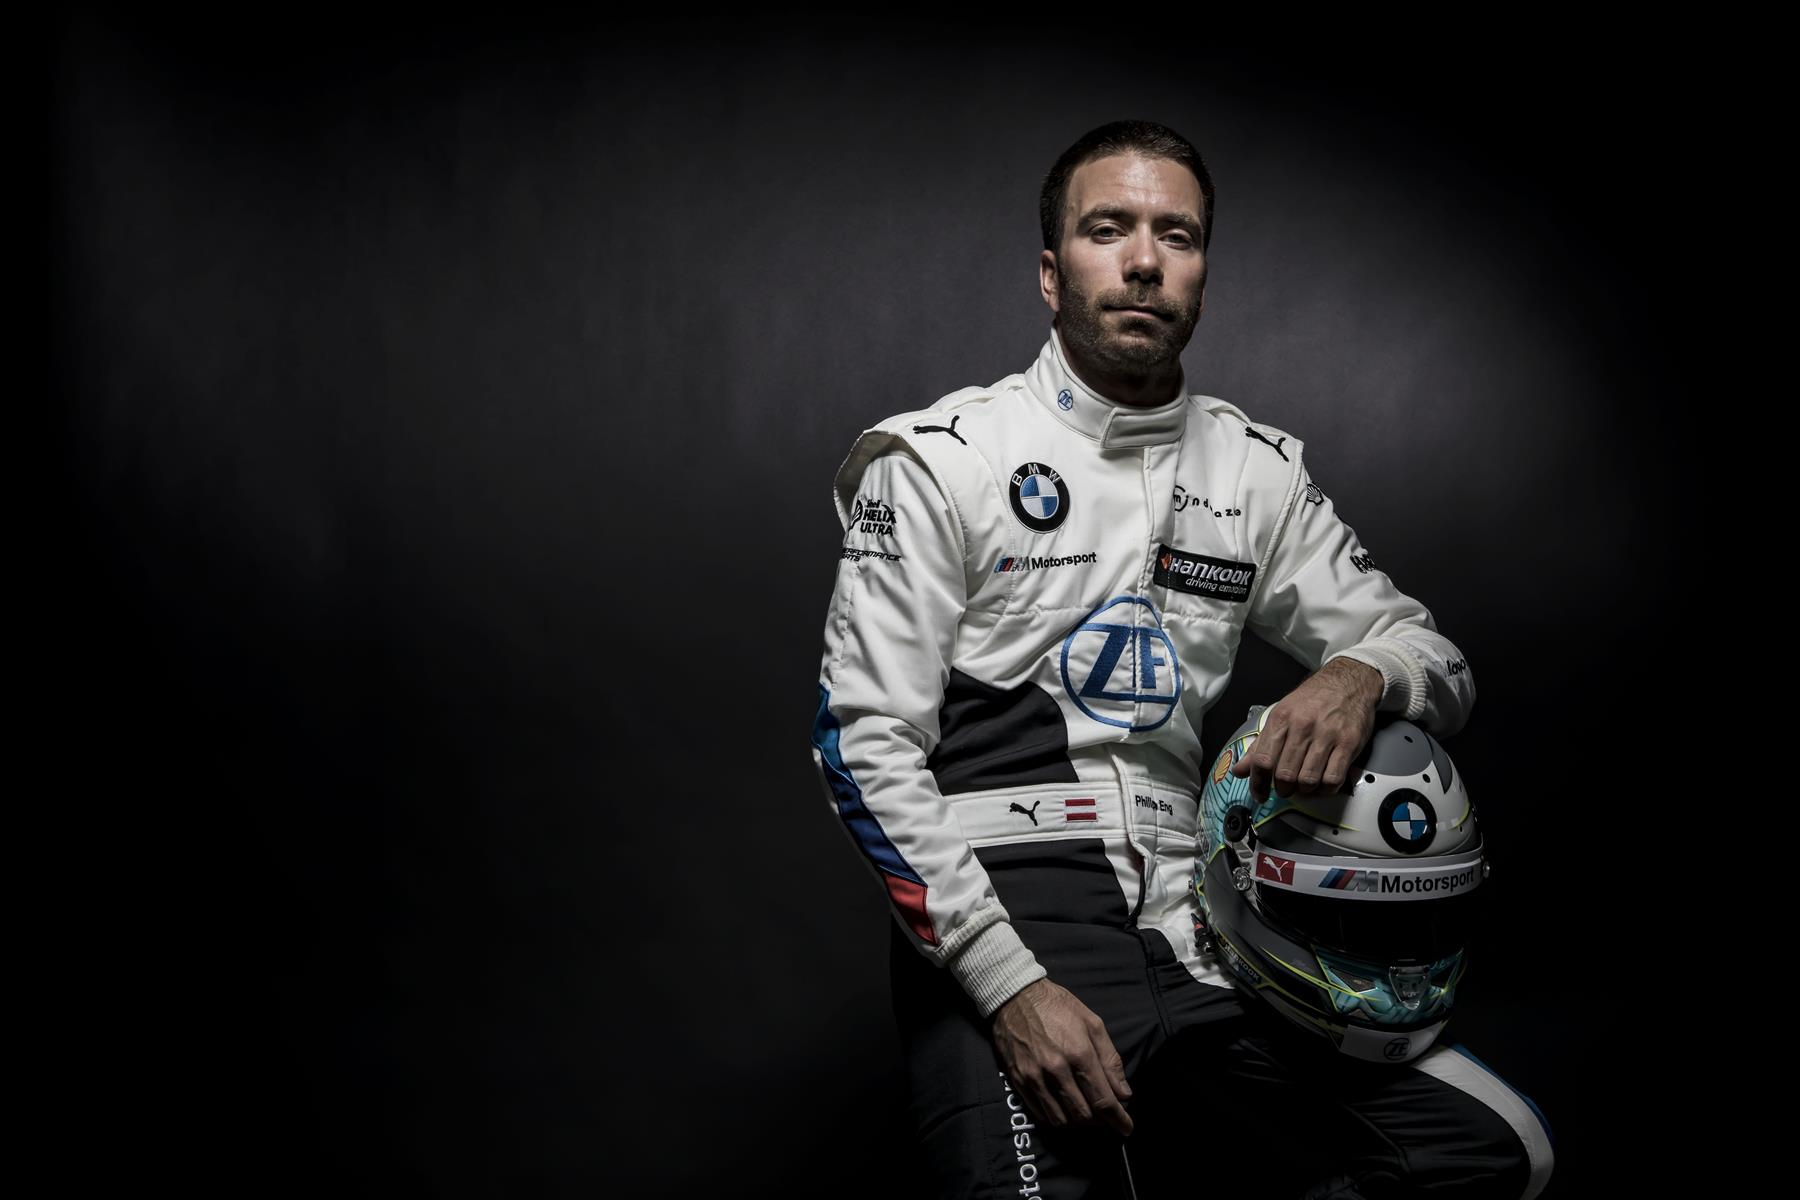 Philipp-Eng-BMW-Motorsport